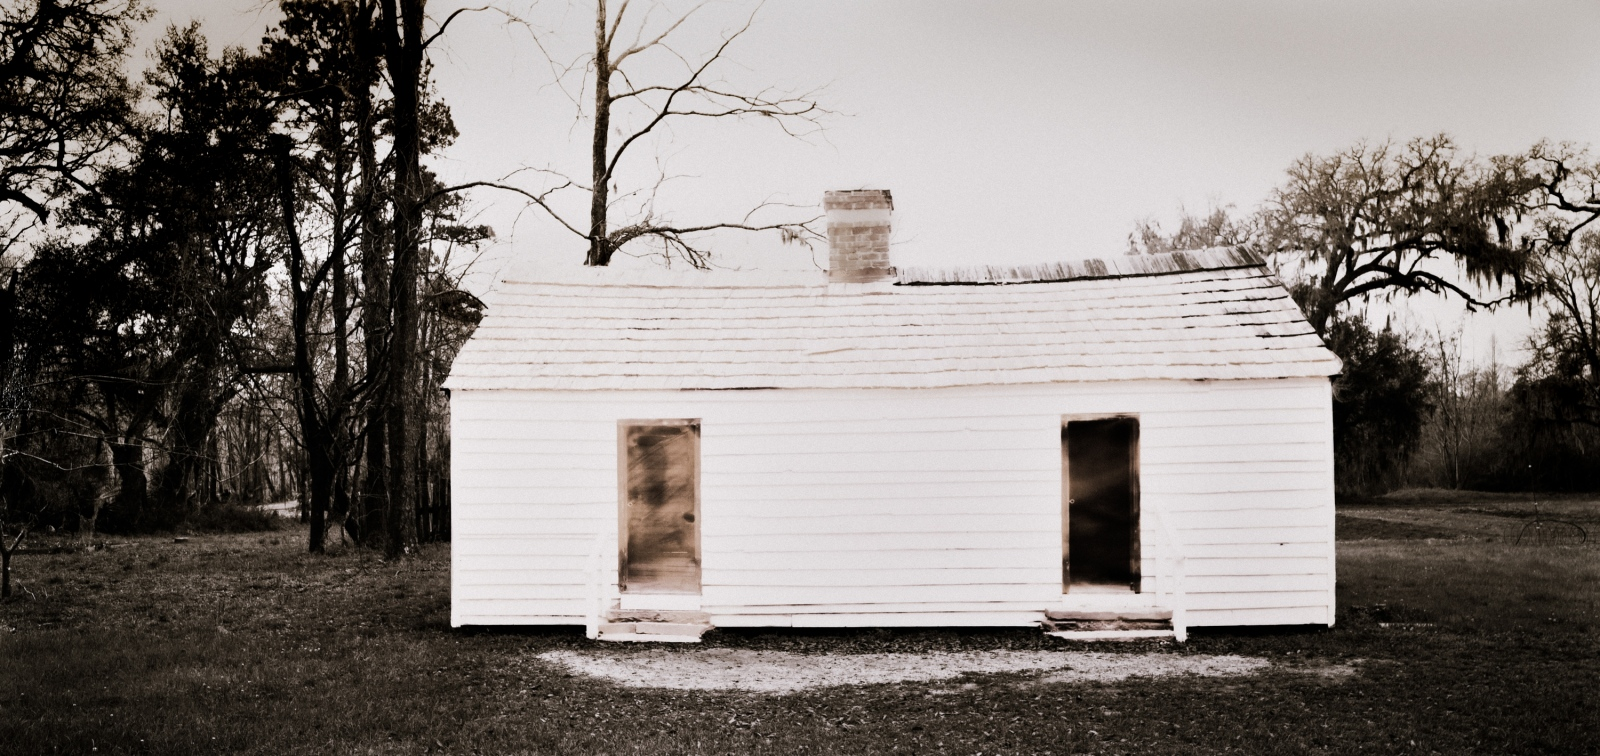 "Slave Dwelling No. 14: Magnolia Plantation, South Carolina silver gelatin contact print from 8x16"" film negative, transformed with bleach to express the ephemeral nature of these fragile structures"